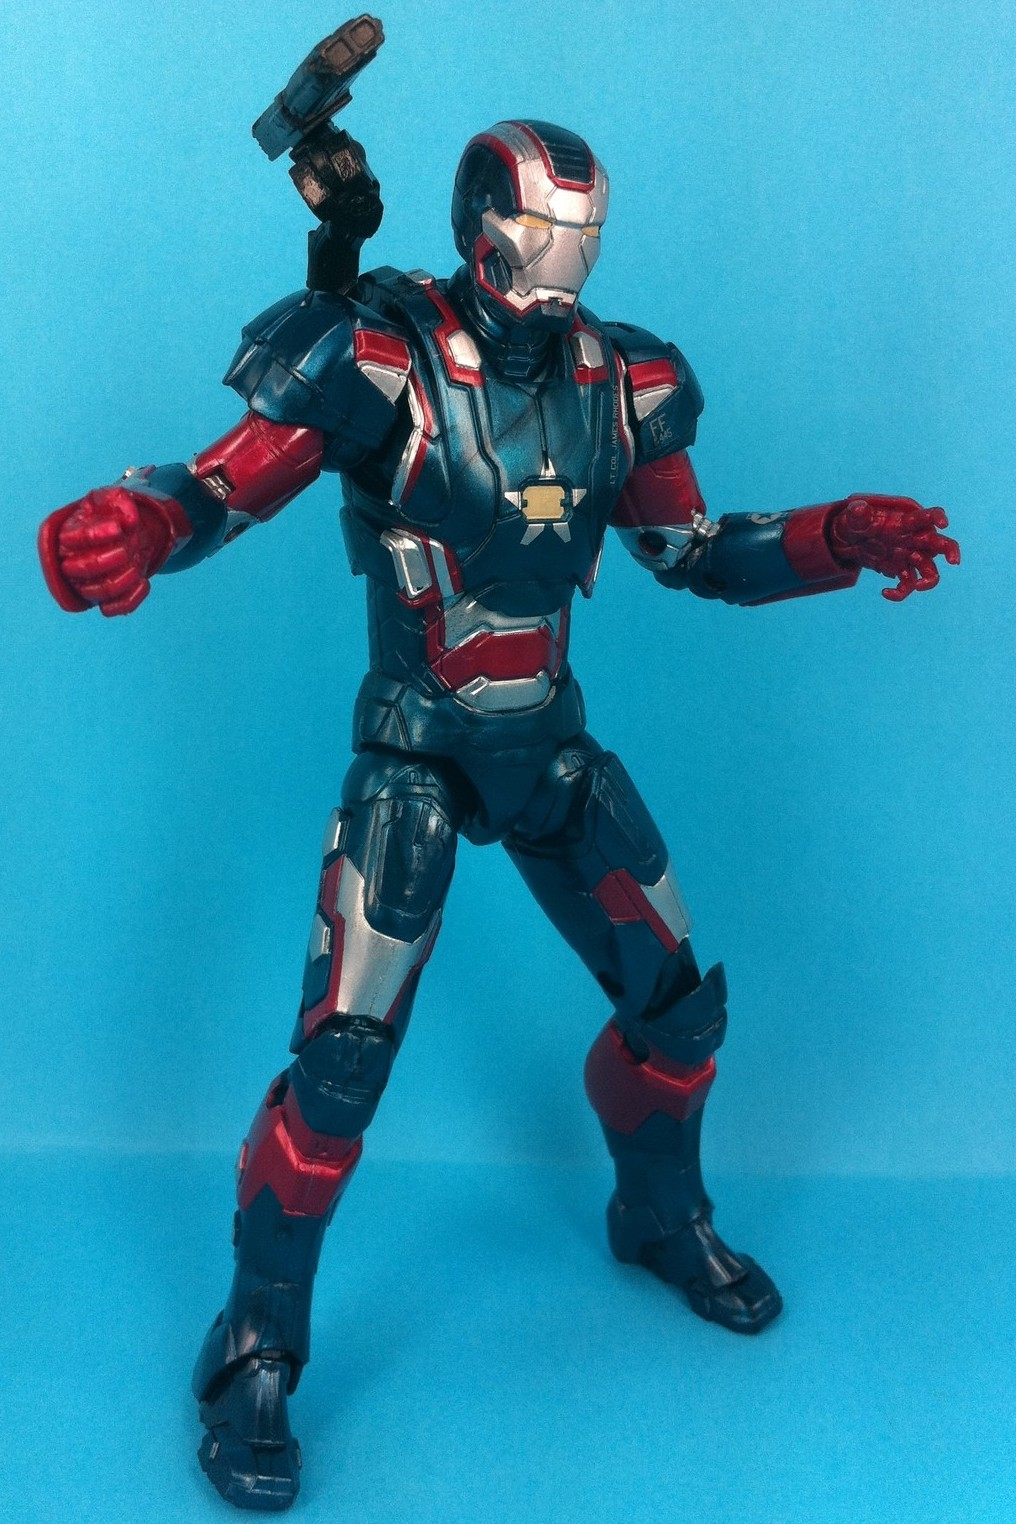 Marvel Legends Iron Man 3 Series 2 Iron Patriot Movie Figure